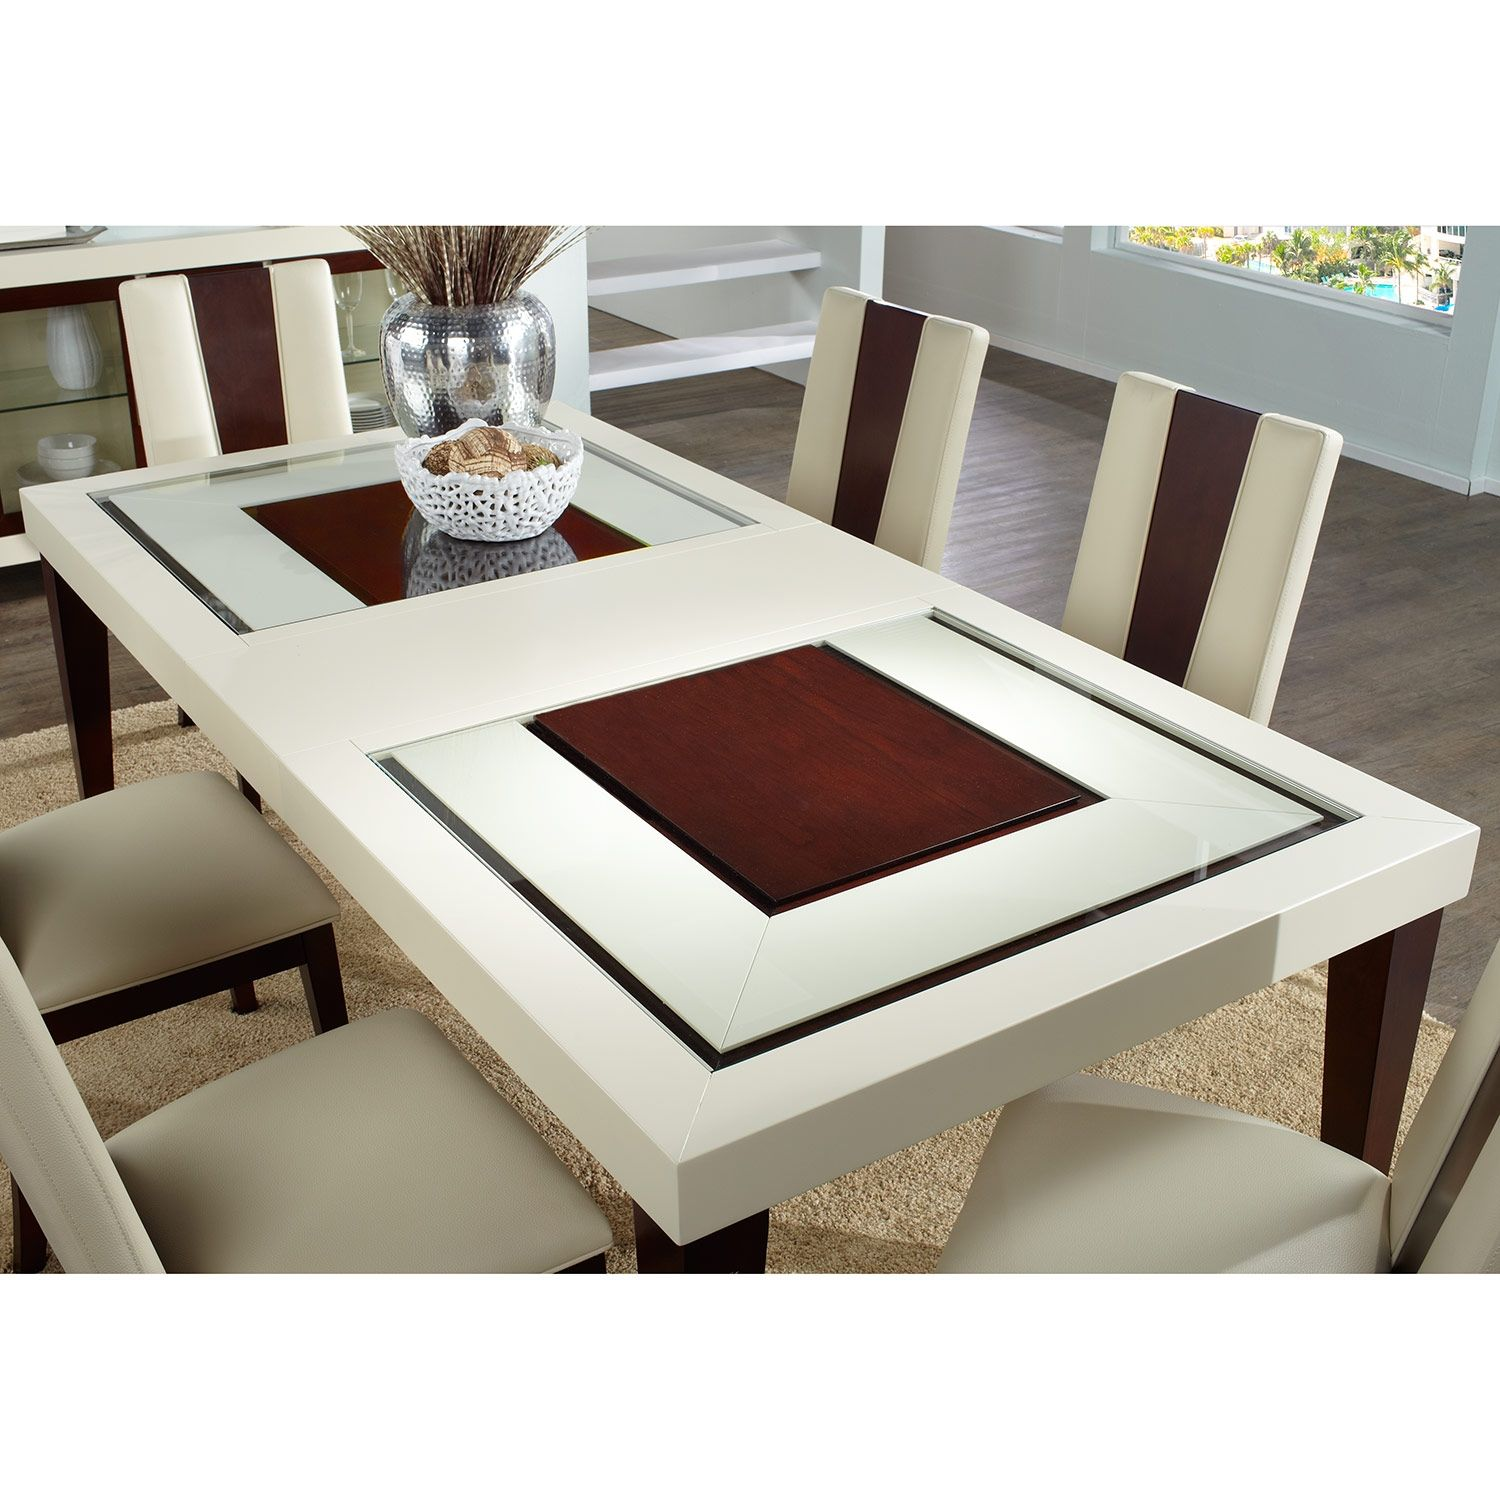 Zeno Dining Table